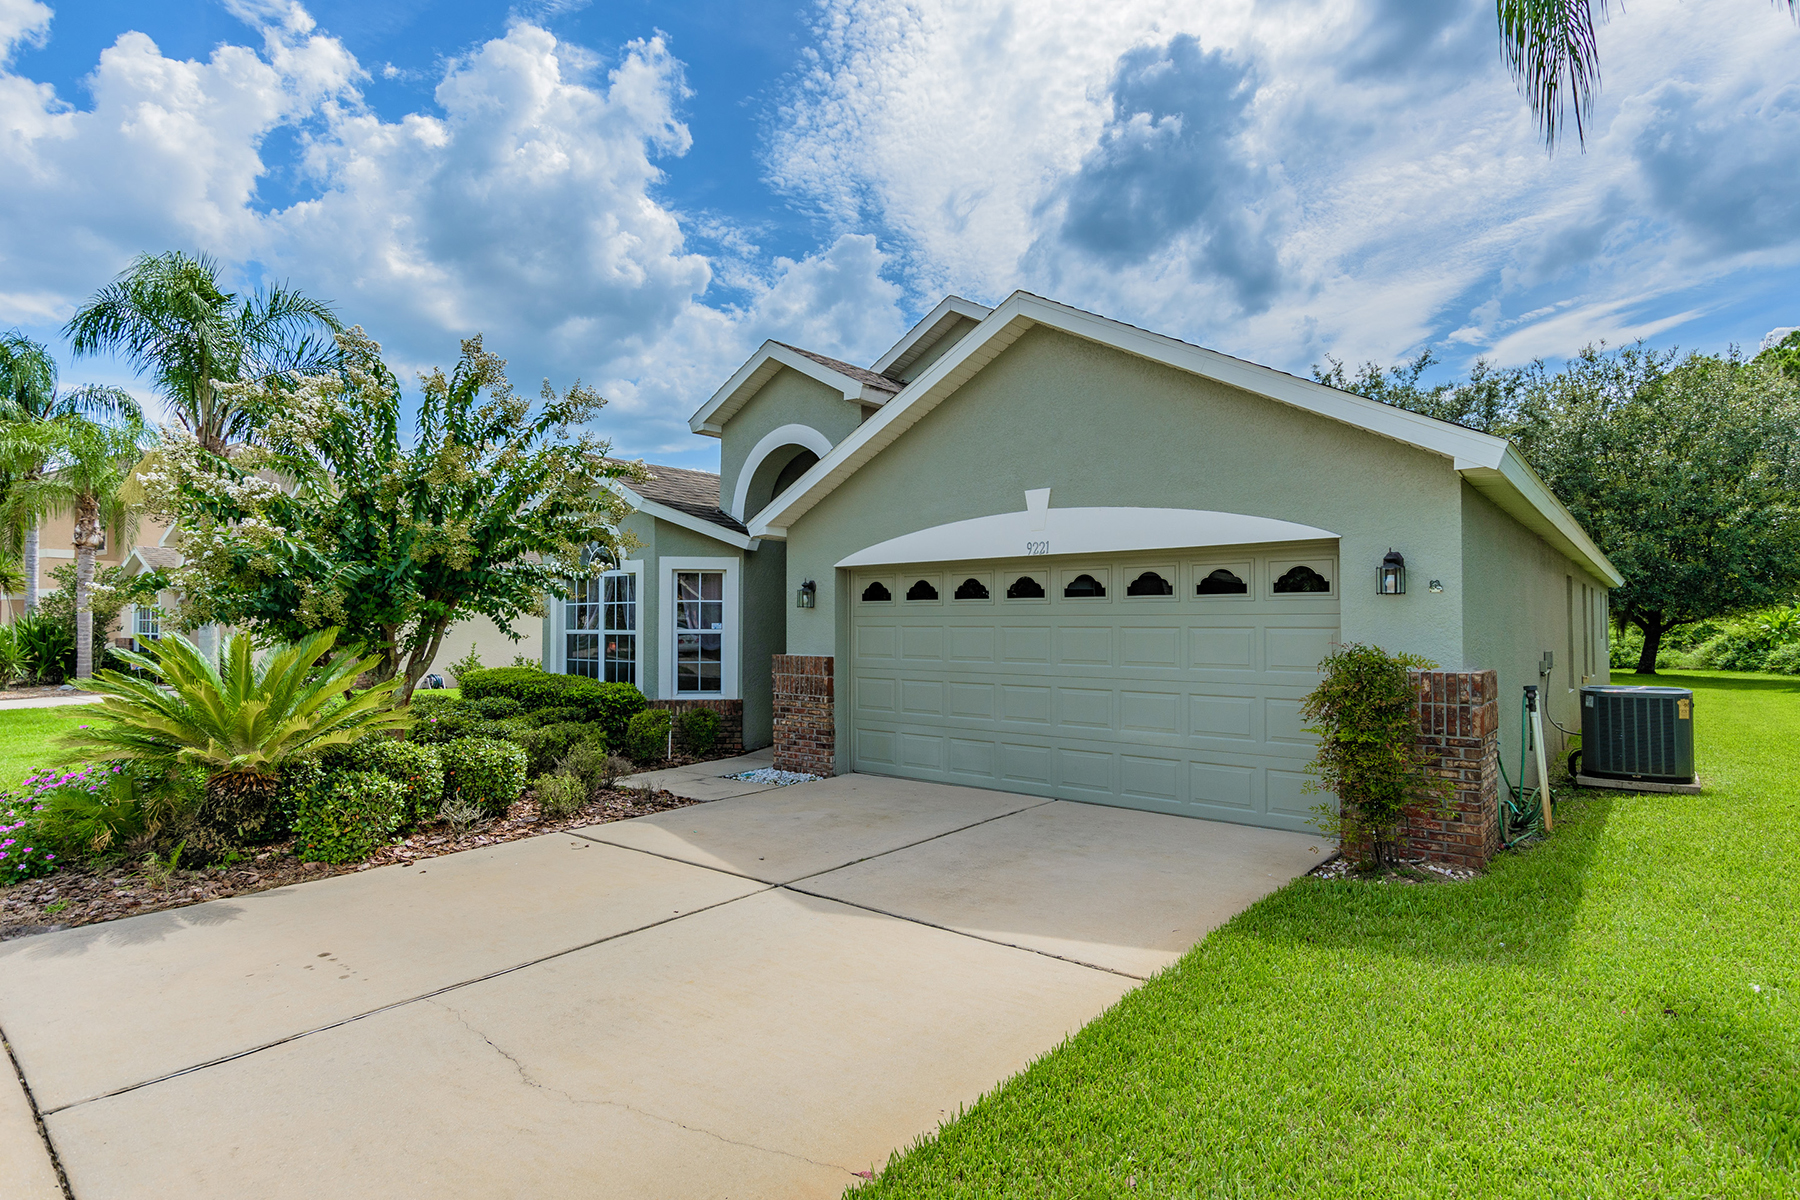 Single Family Home for Sale at 9221 Pecky Cypress Way , Orlando, FL 32836 9221 Pecky Cypress Way 2, Orlando, Florida 32836 United States